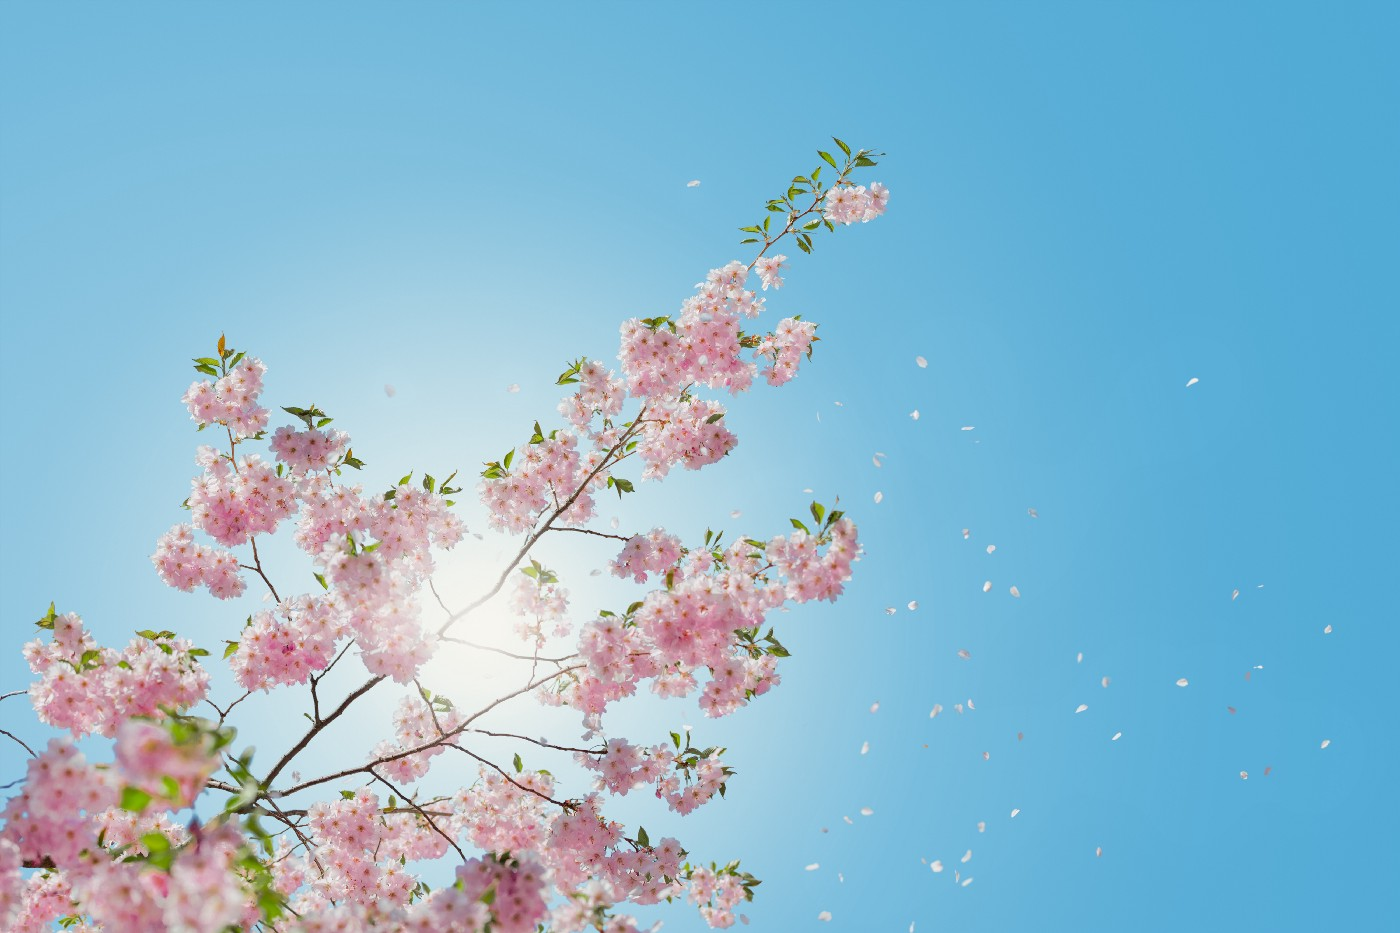 Photo of blooming cherry blossoms against a bright blue sky.